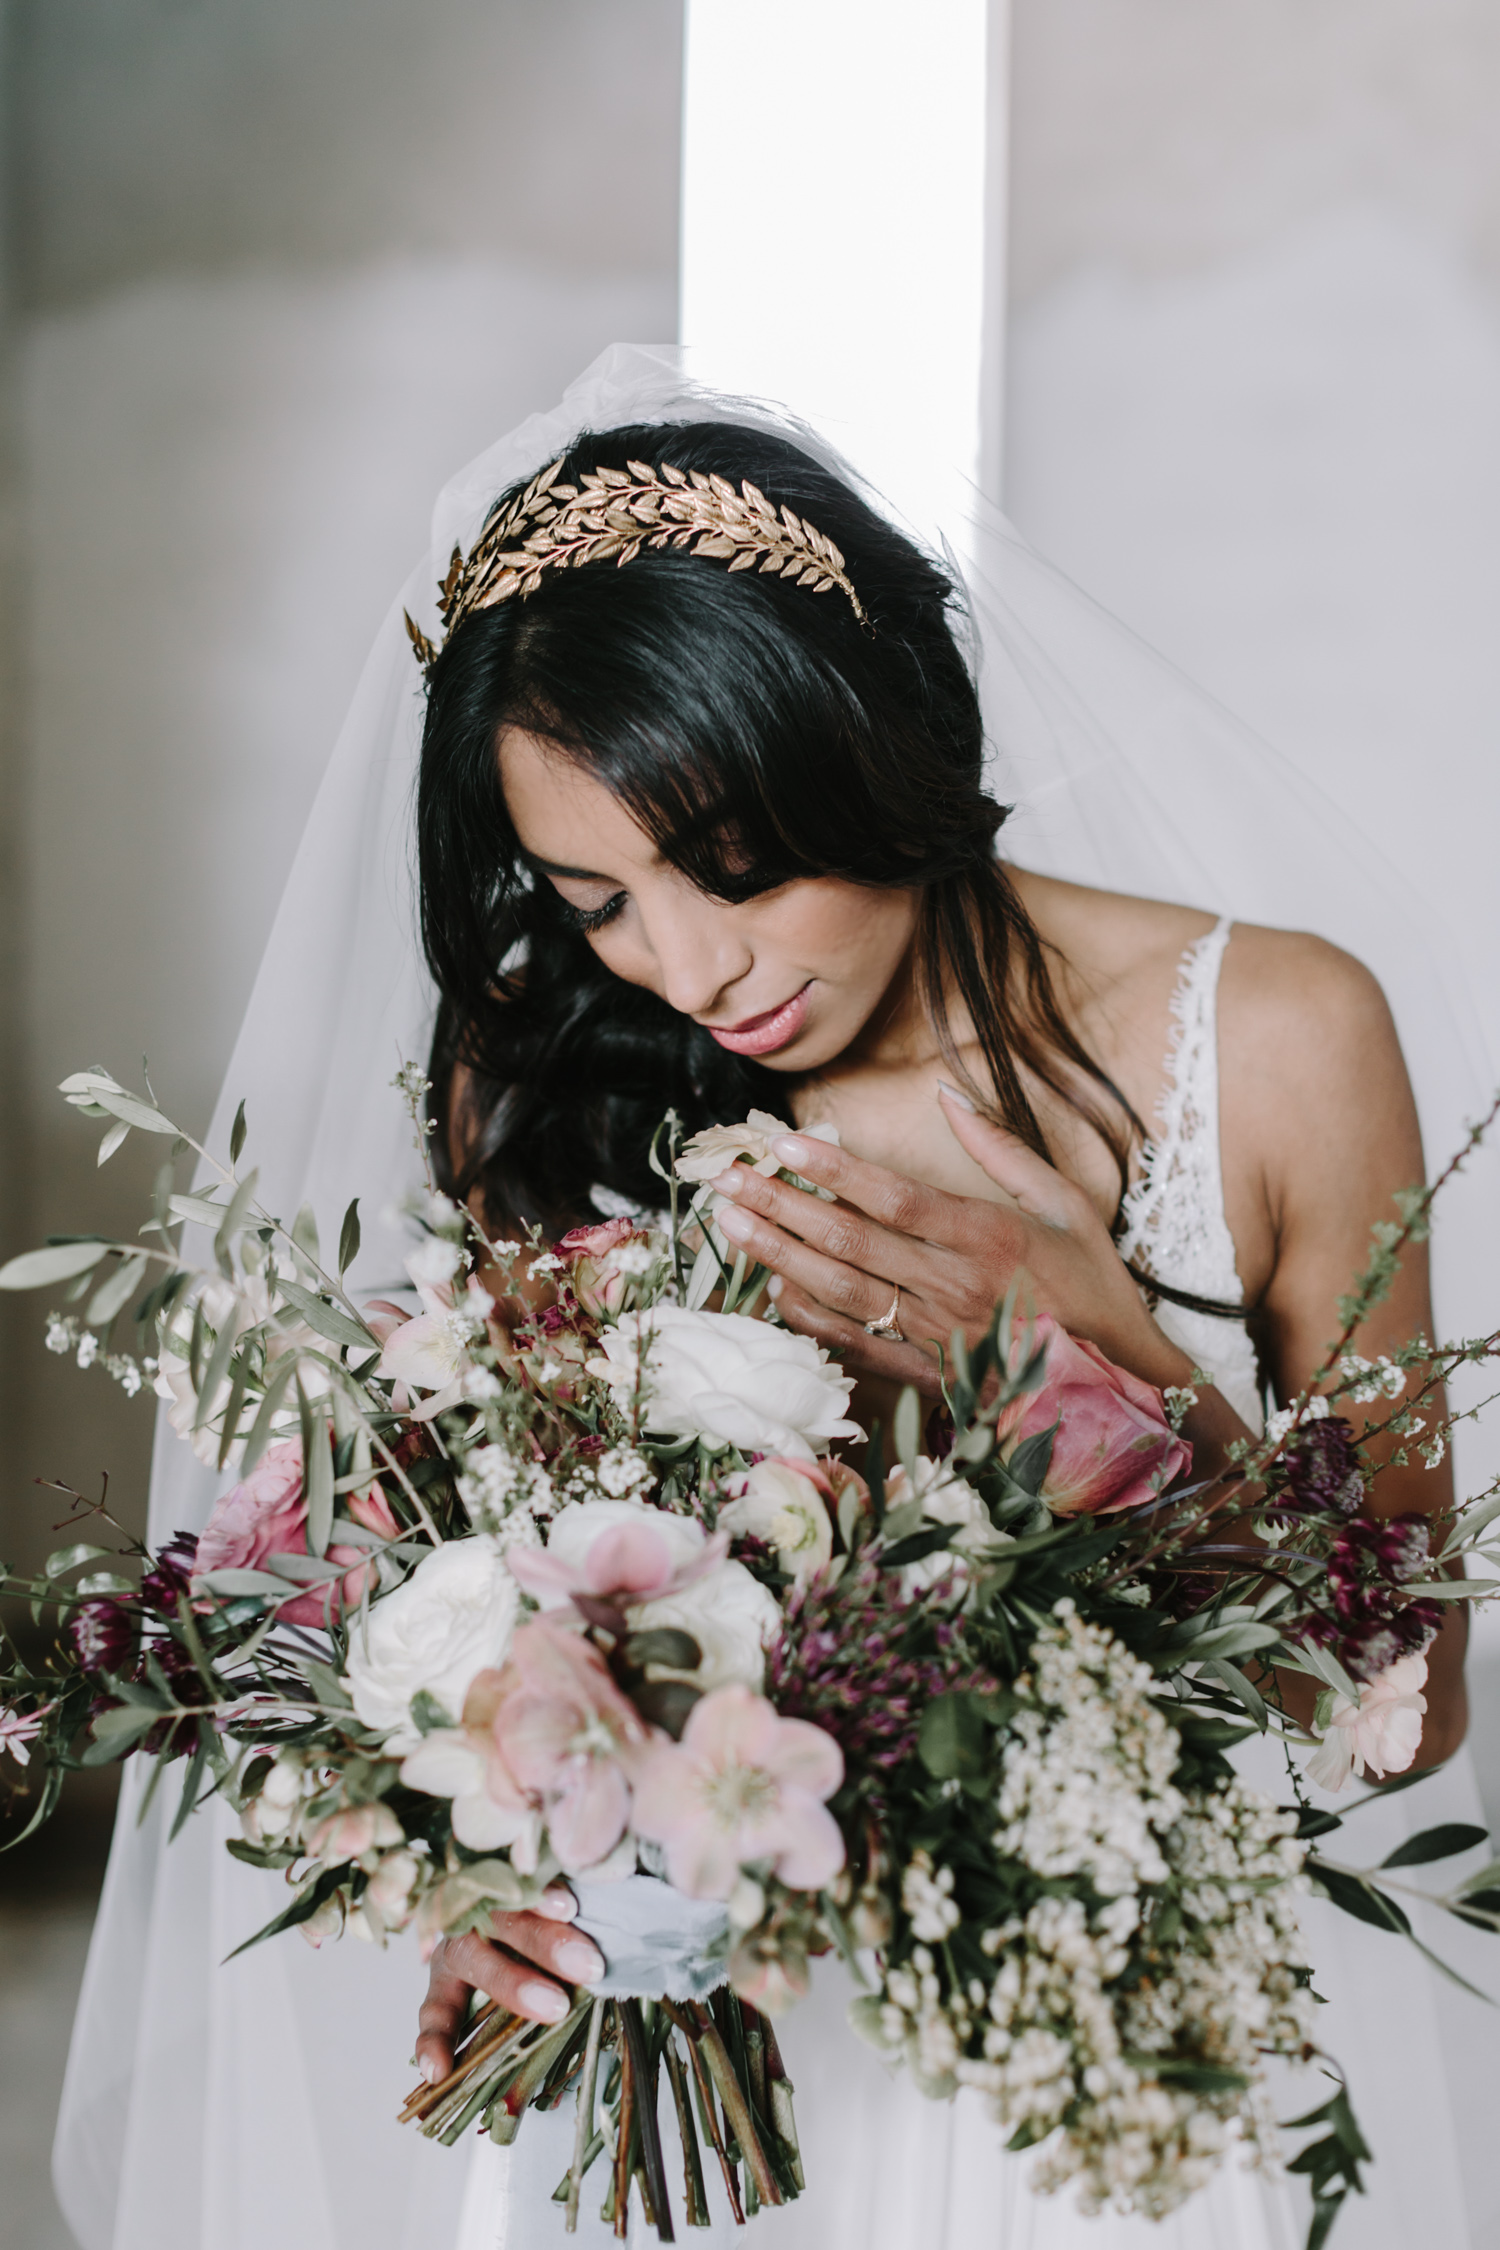 A bride tenderly touches the flowers in her bouquet at her destination wedding